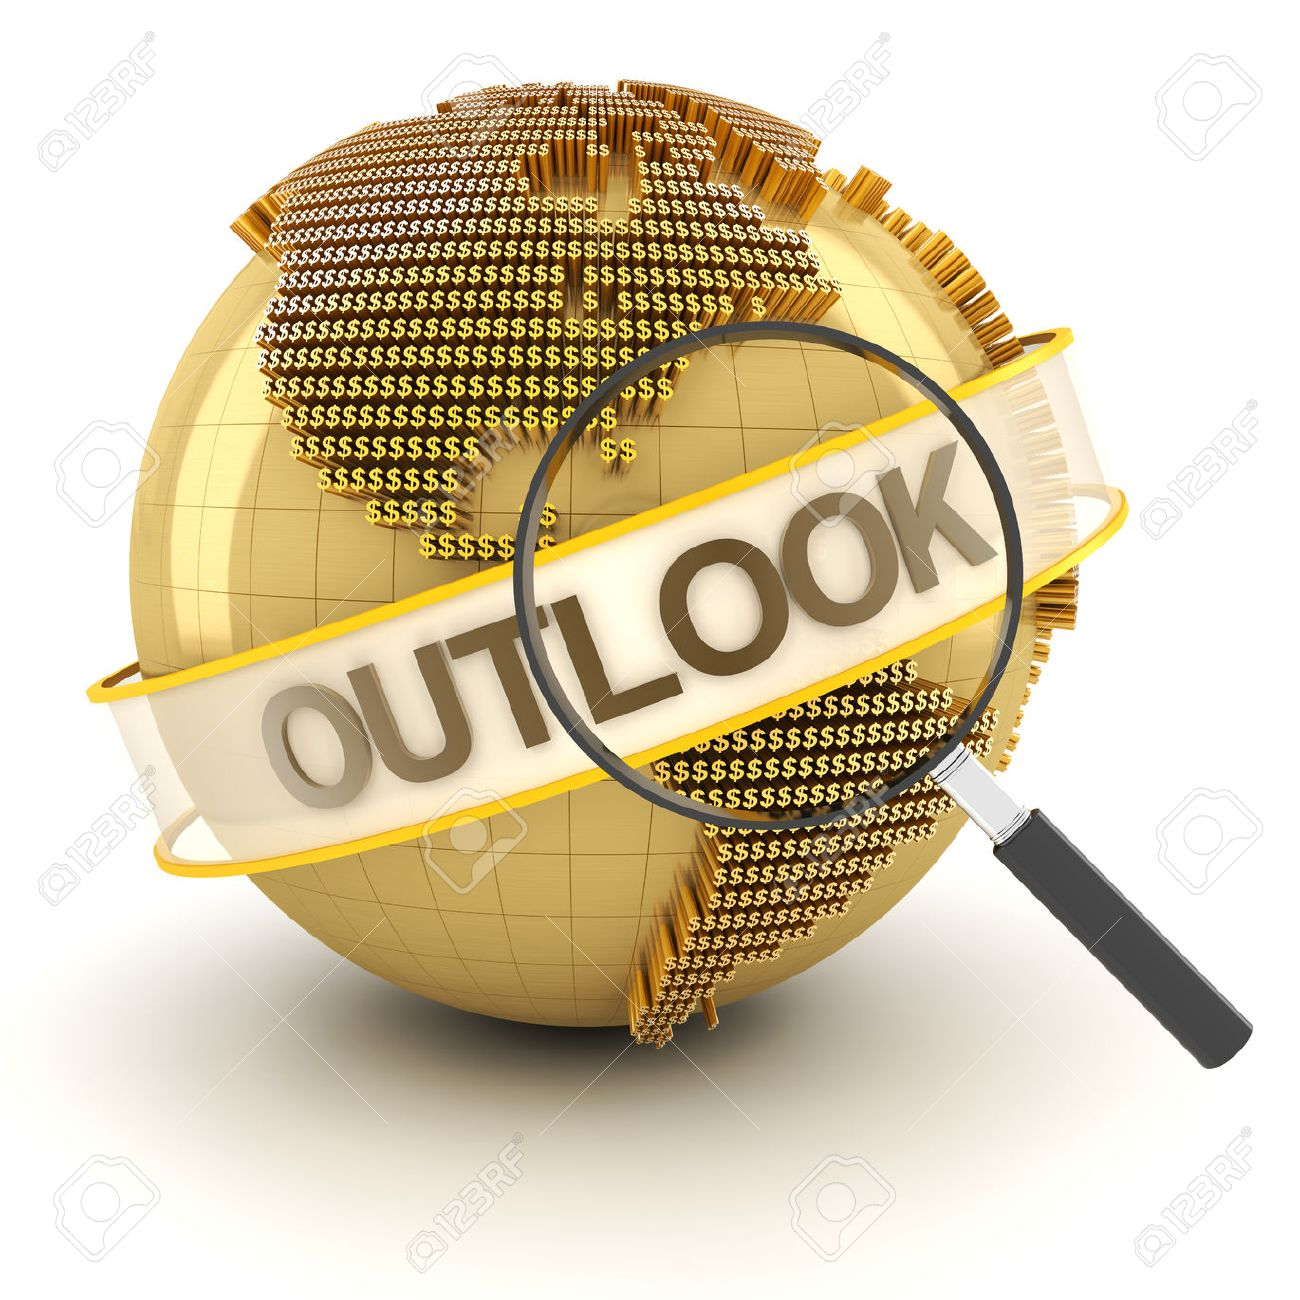 Global financial outlook symbol with globe, 3d render, white